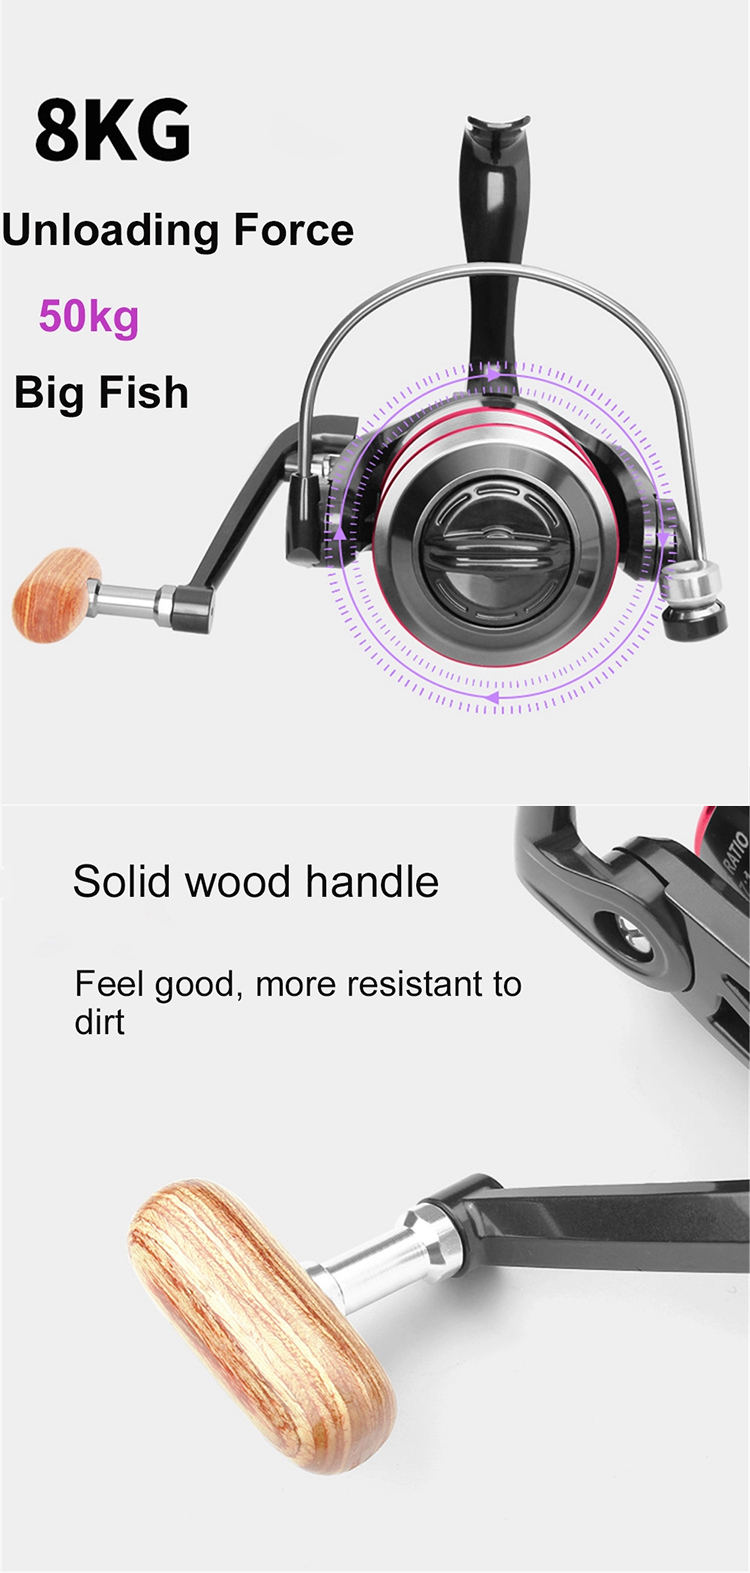 2021 Trending New Arrivals Professional Throwing Fishing Gifts Spinning Fishing Wheel Trolling Fish Reels